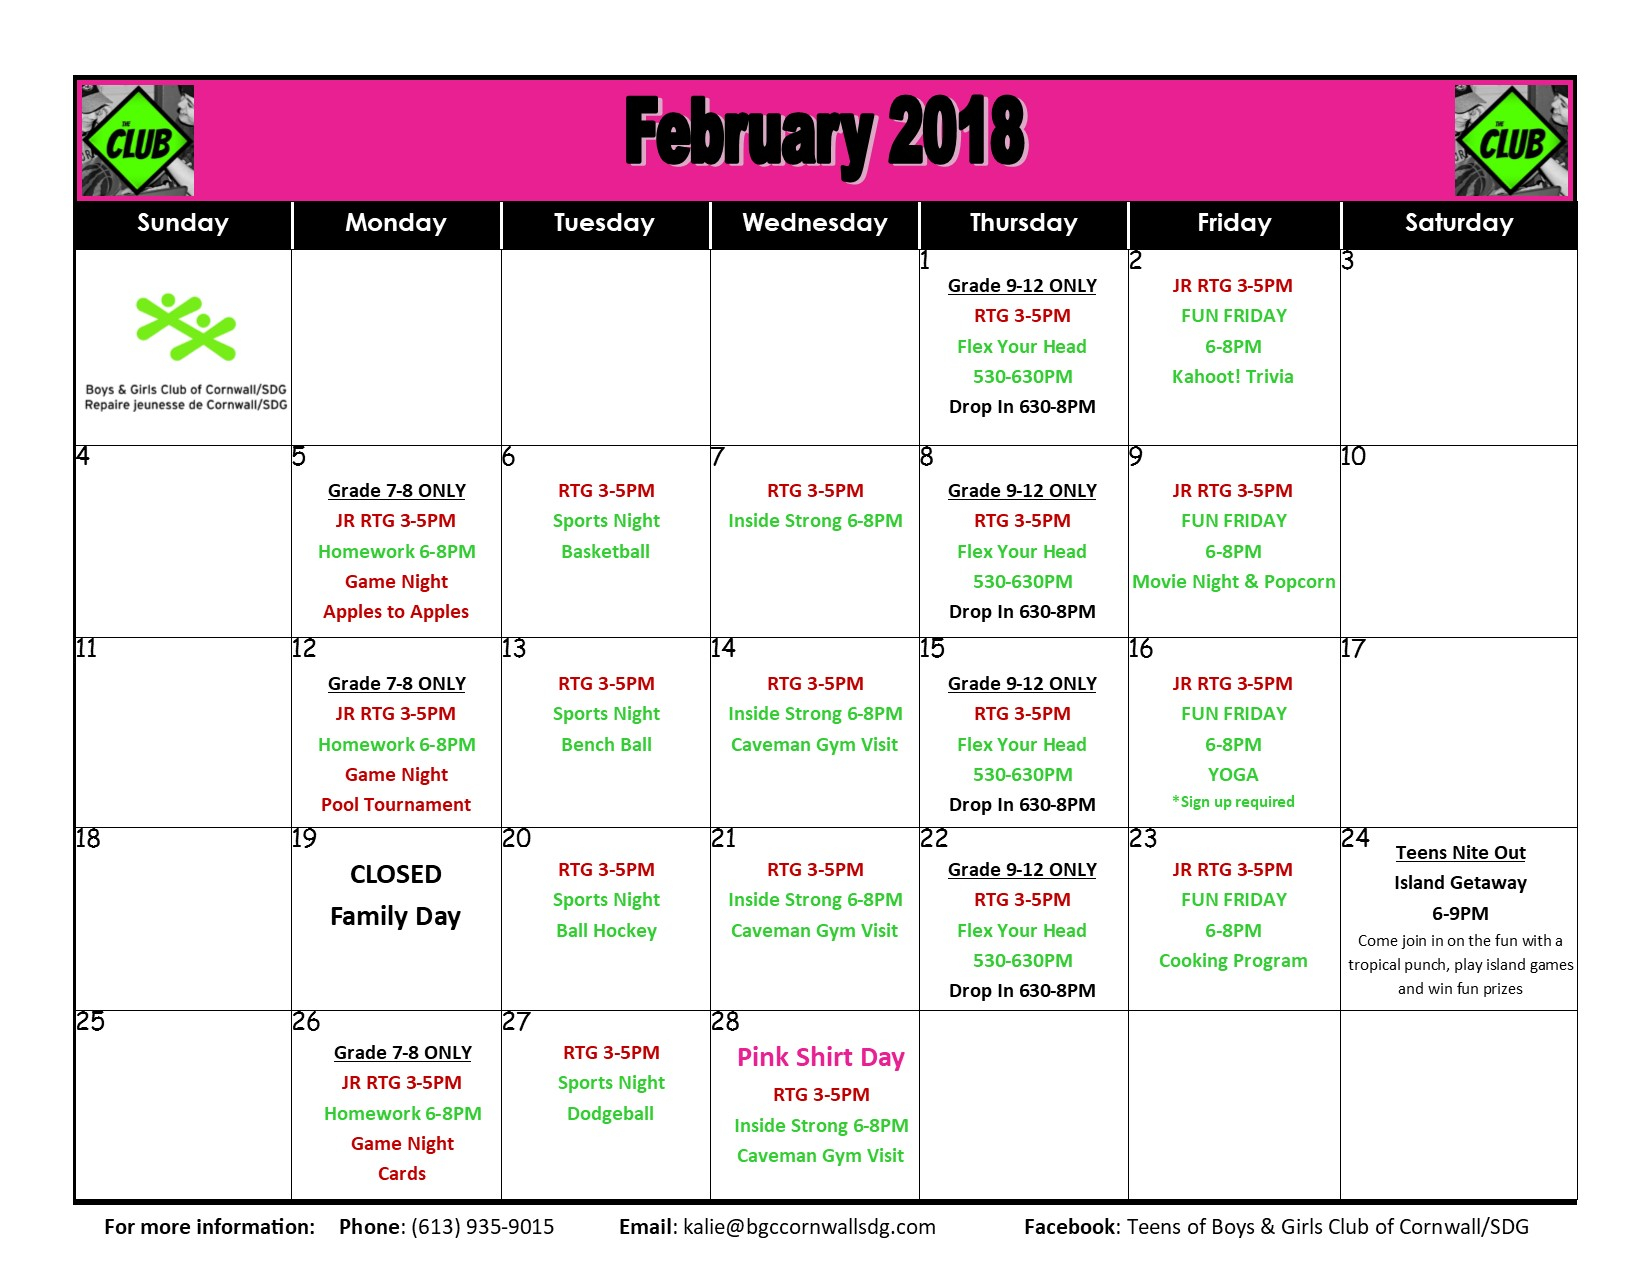 Boys And Girls Club Youth Program Calendar | Intended For Boys And Girls Club Program Program Calendar